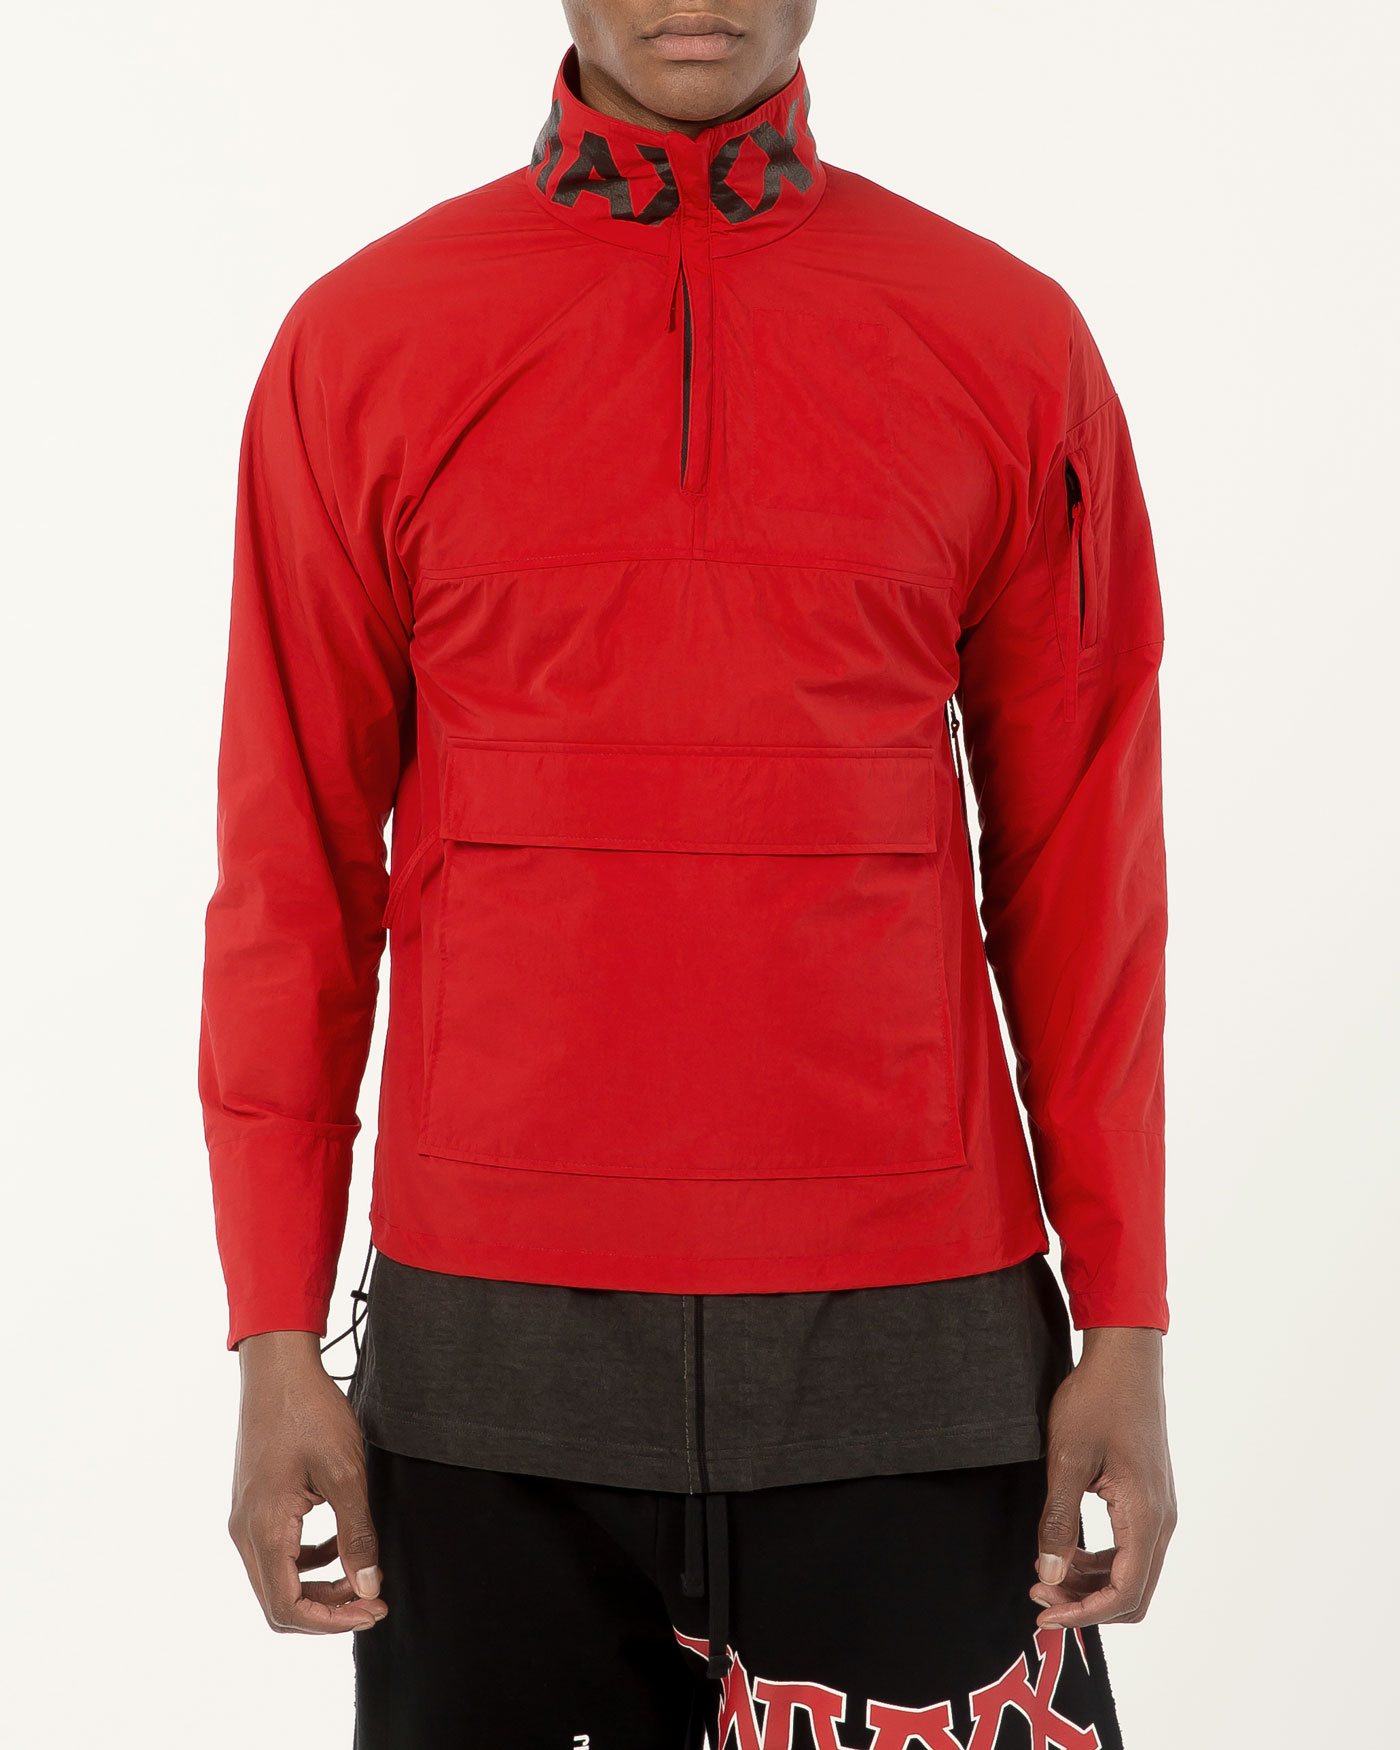 Anorak Jumper Red/Black